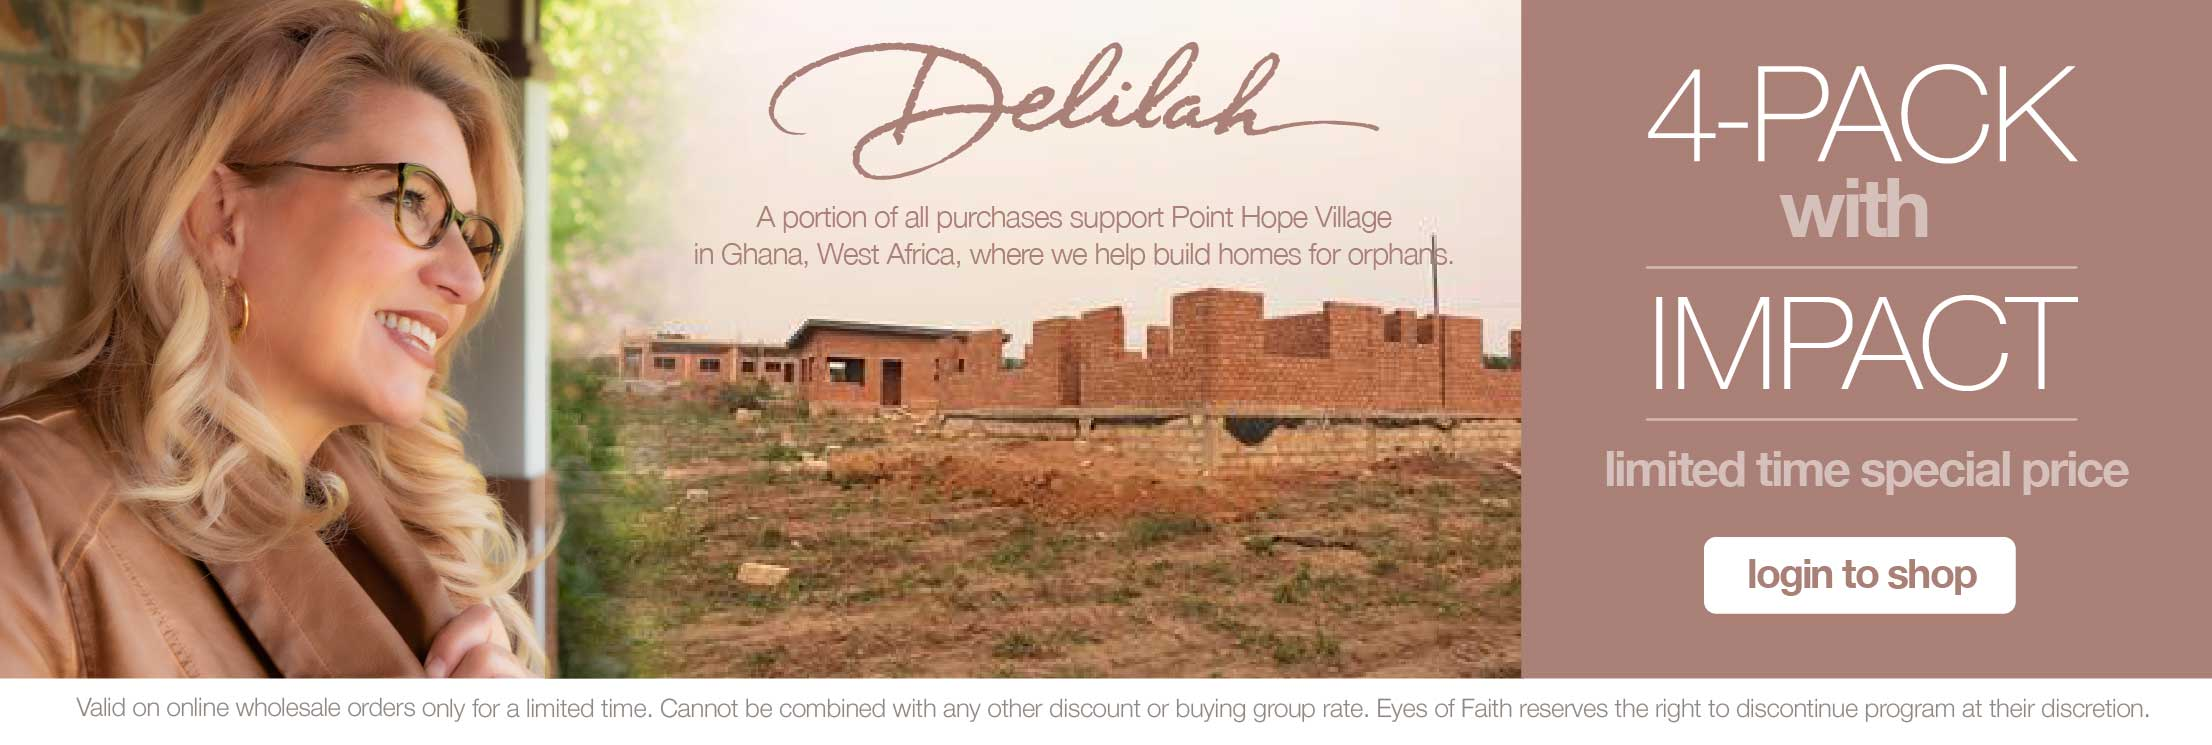 Christian Eyewear that supports Delilah's charity Point Hope